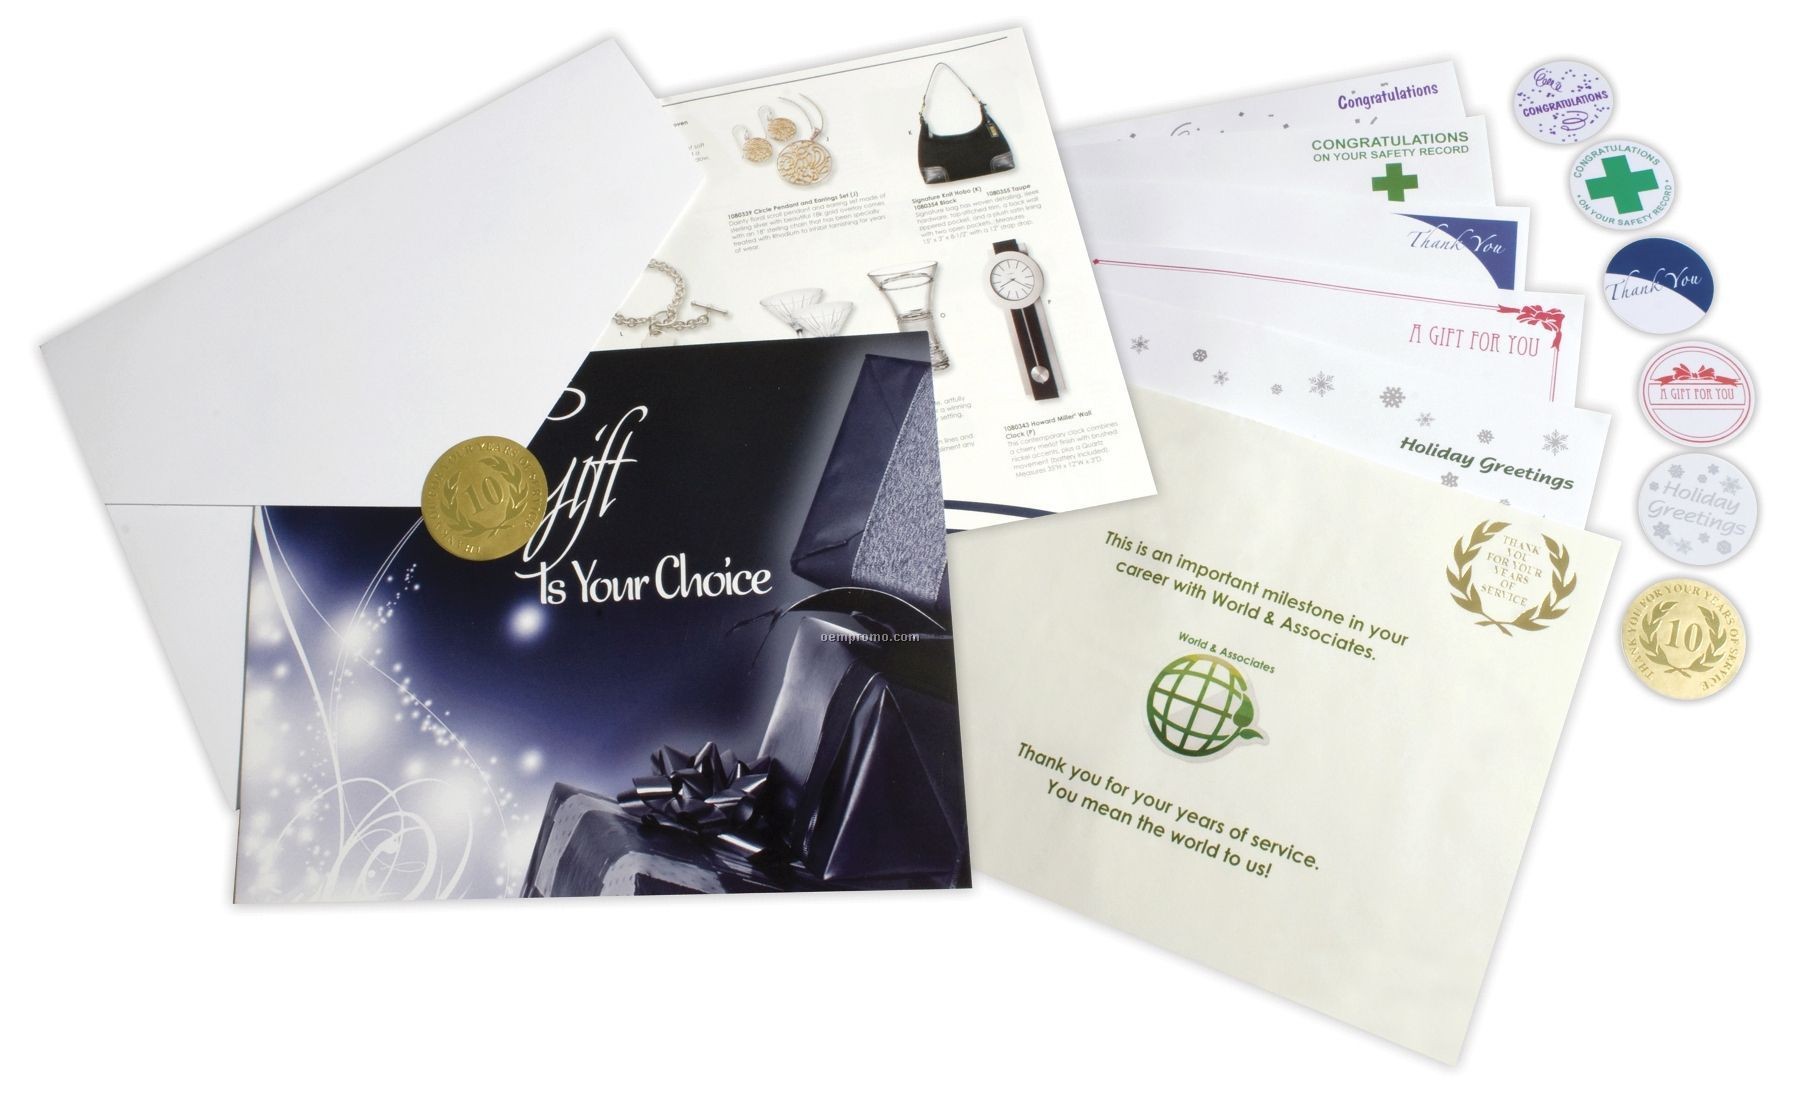 $1500 Gift Of Choice (Crystal Level) Gift Booklet